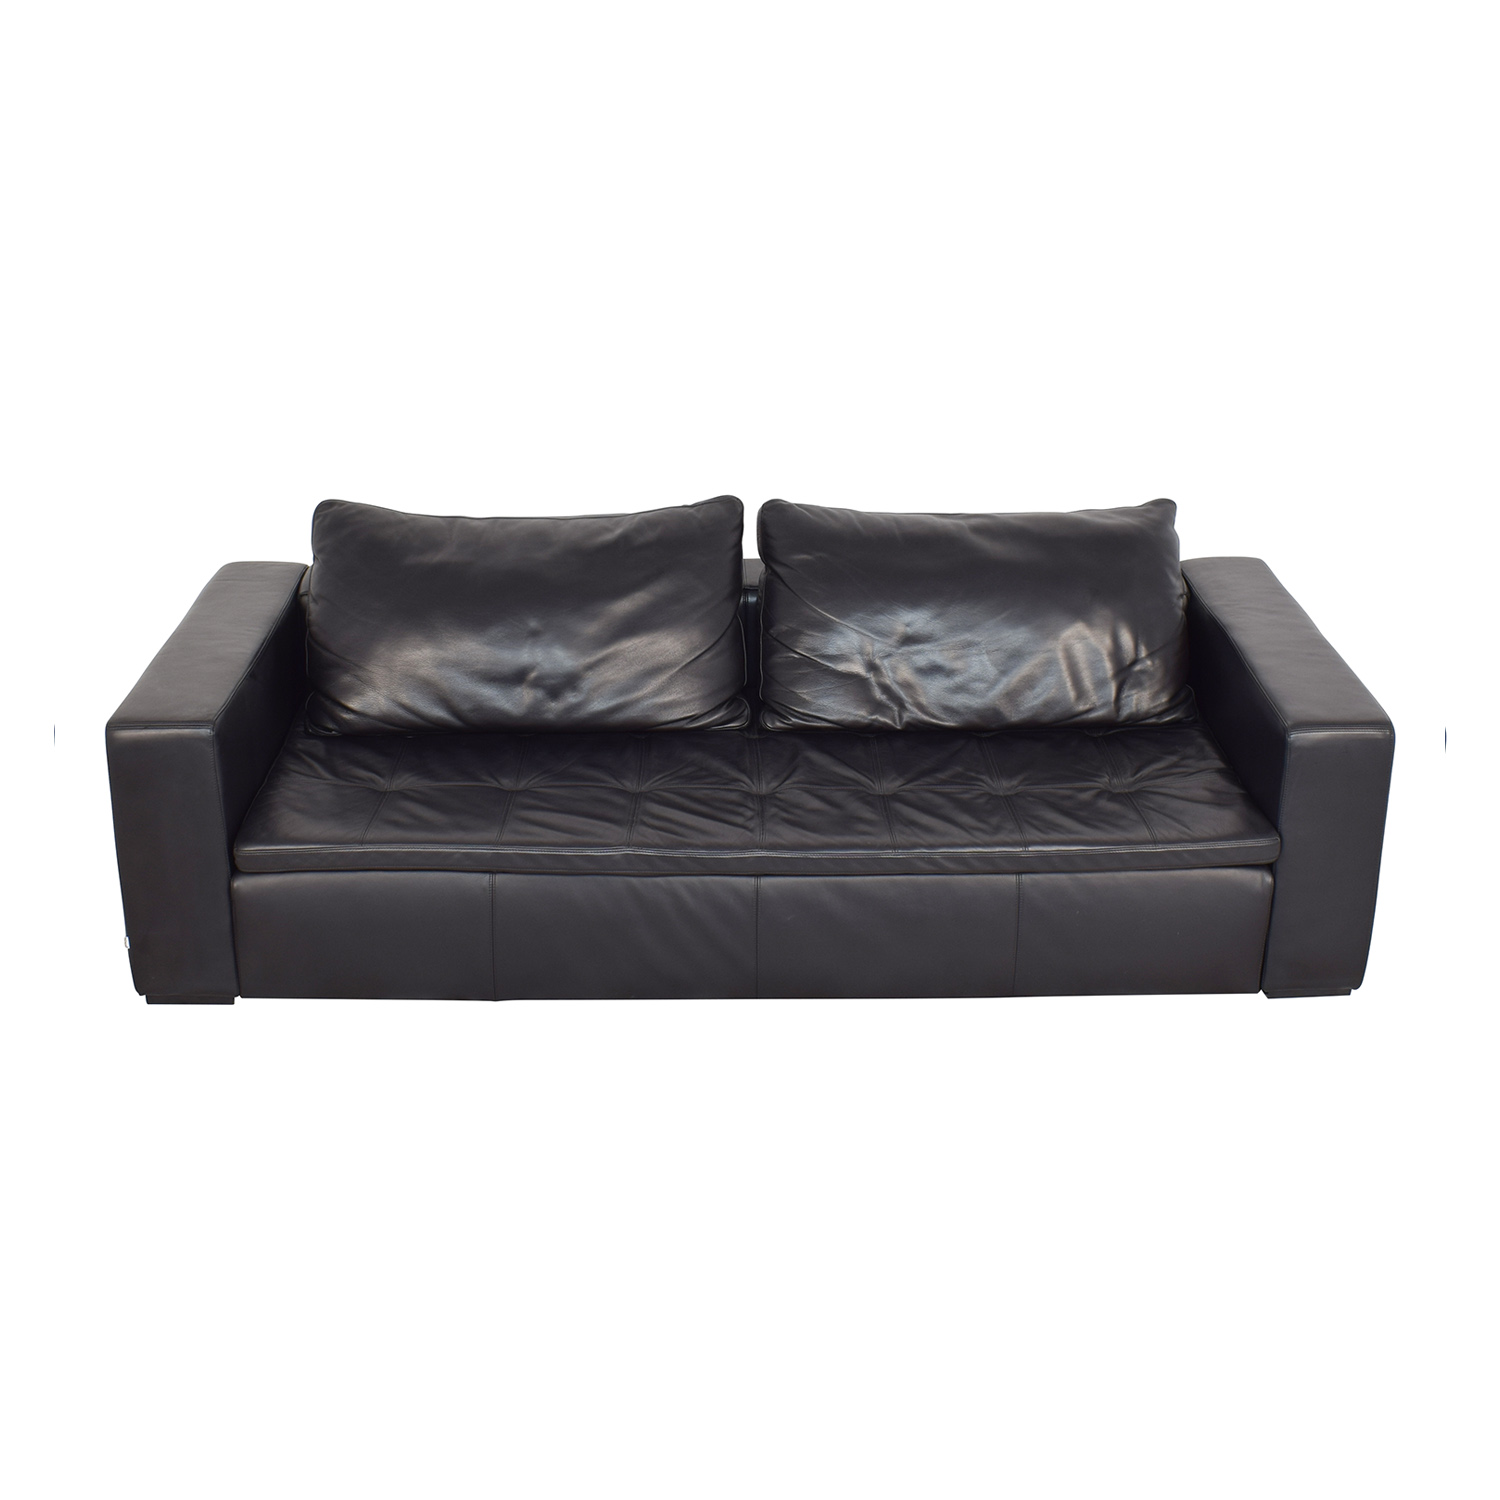 83% OFF - BoConcept BoConcept Mezzo Black Leather Sofa / Sofas